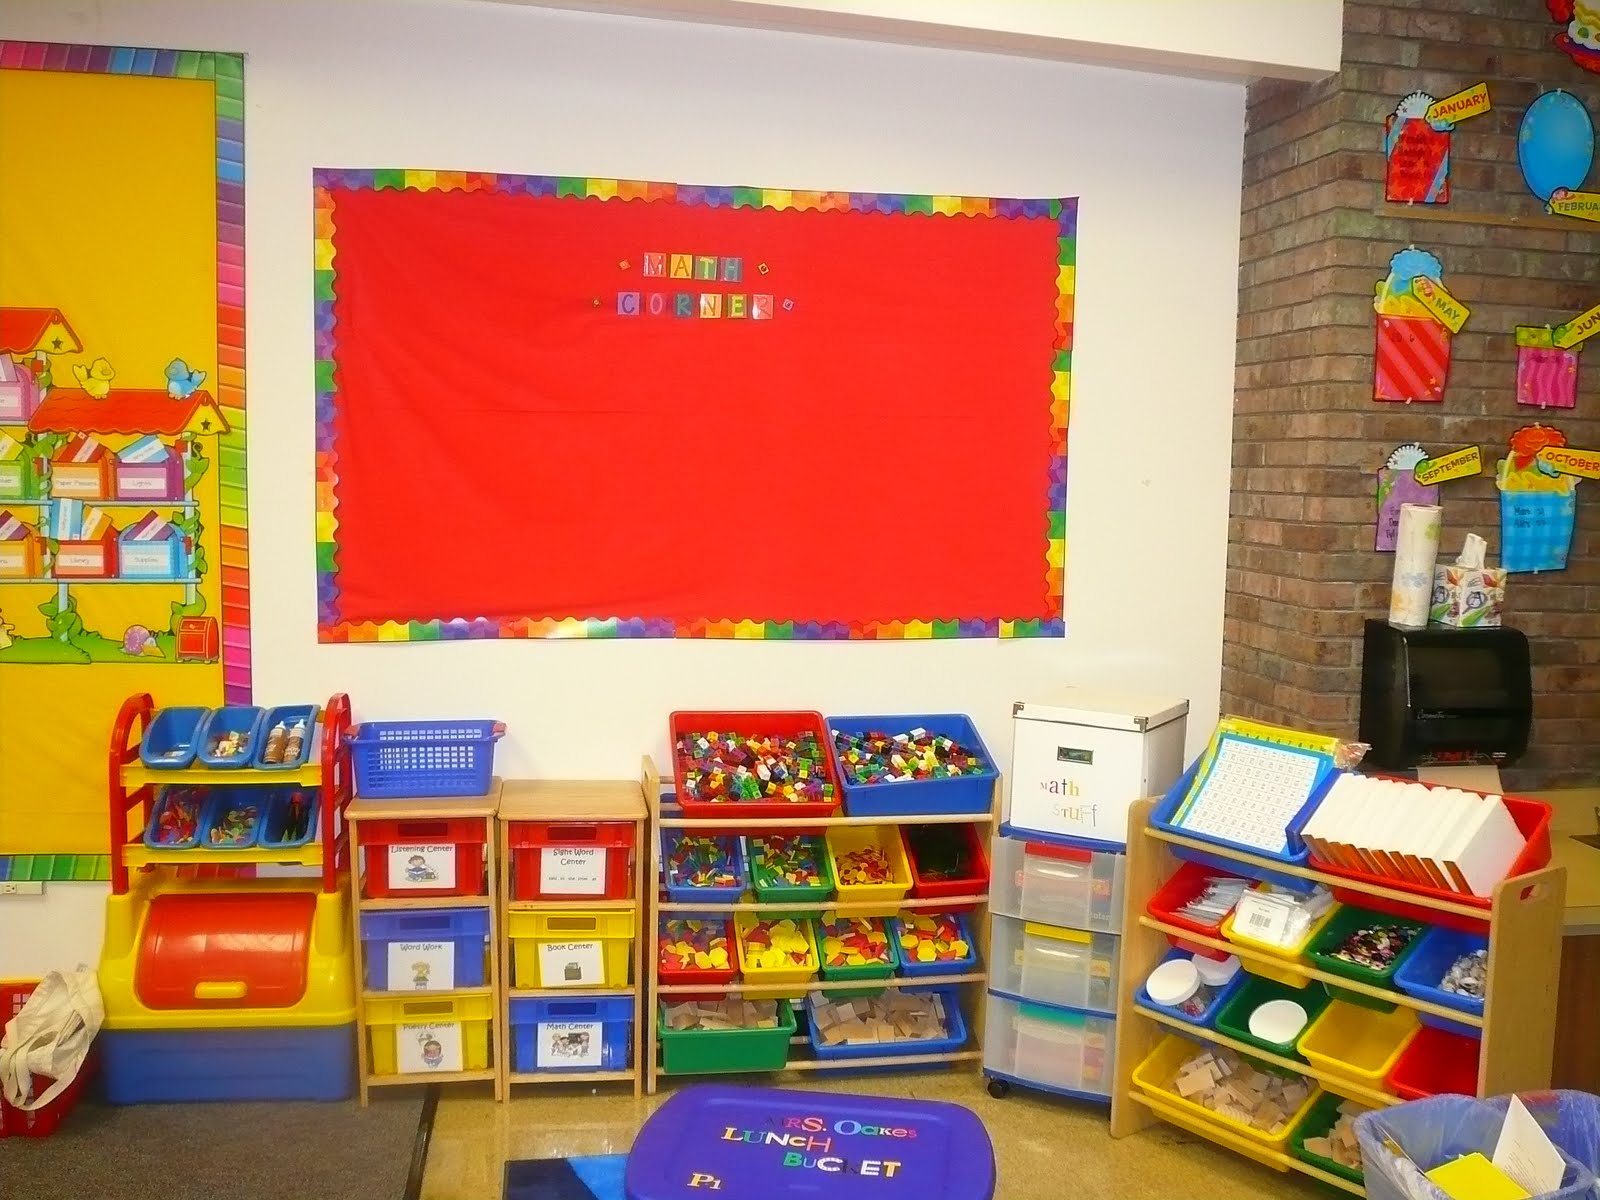 Centers Or Stations Classroom Design Definition ~ Get inspired math centers clutter free classroom